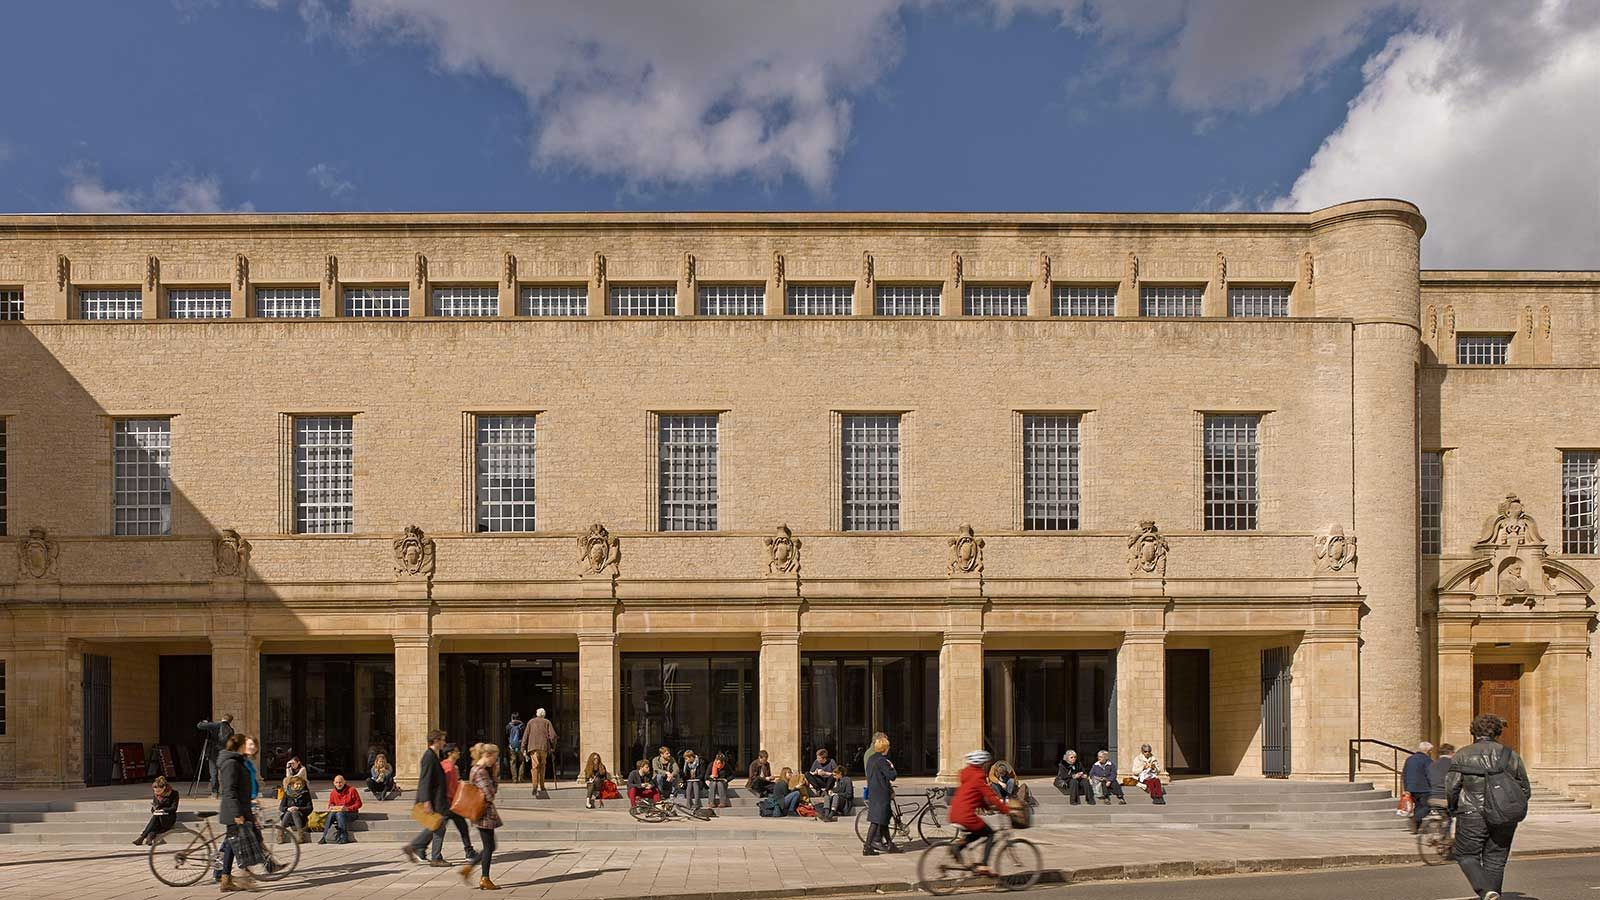 Bodleian Library Building Exterior Day View - Mace Group